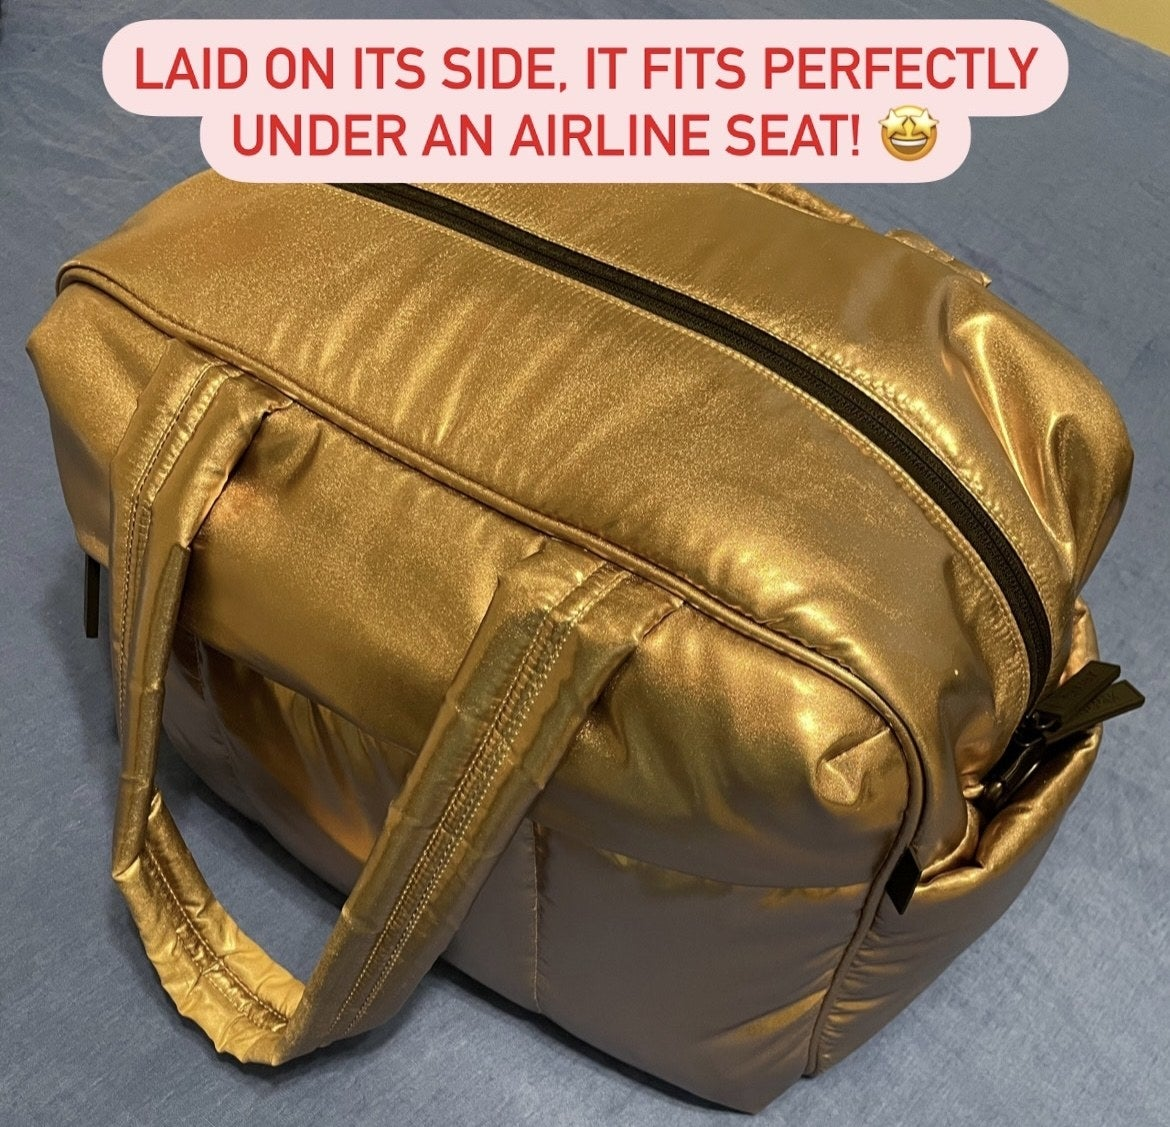 """the duffel in gold captioned """"laid on its side it fits perfectly under an airline seat"""""""